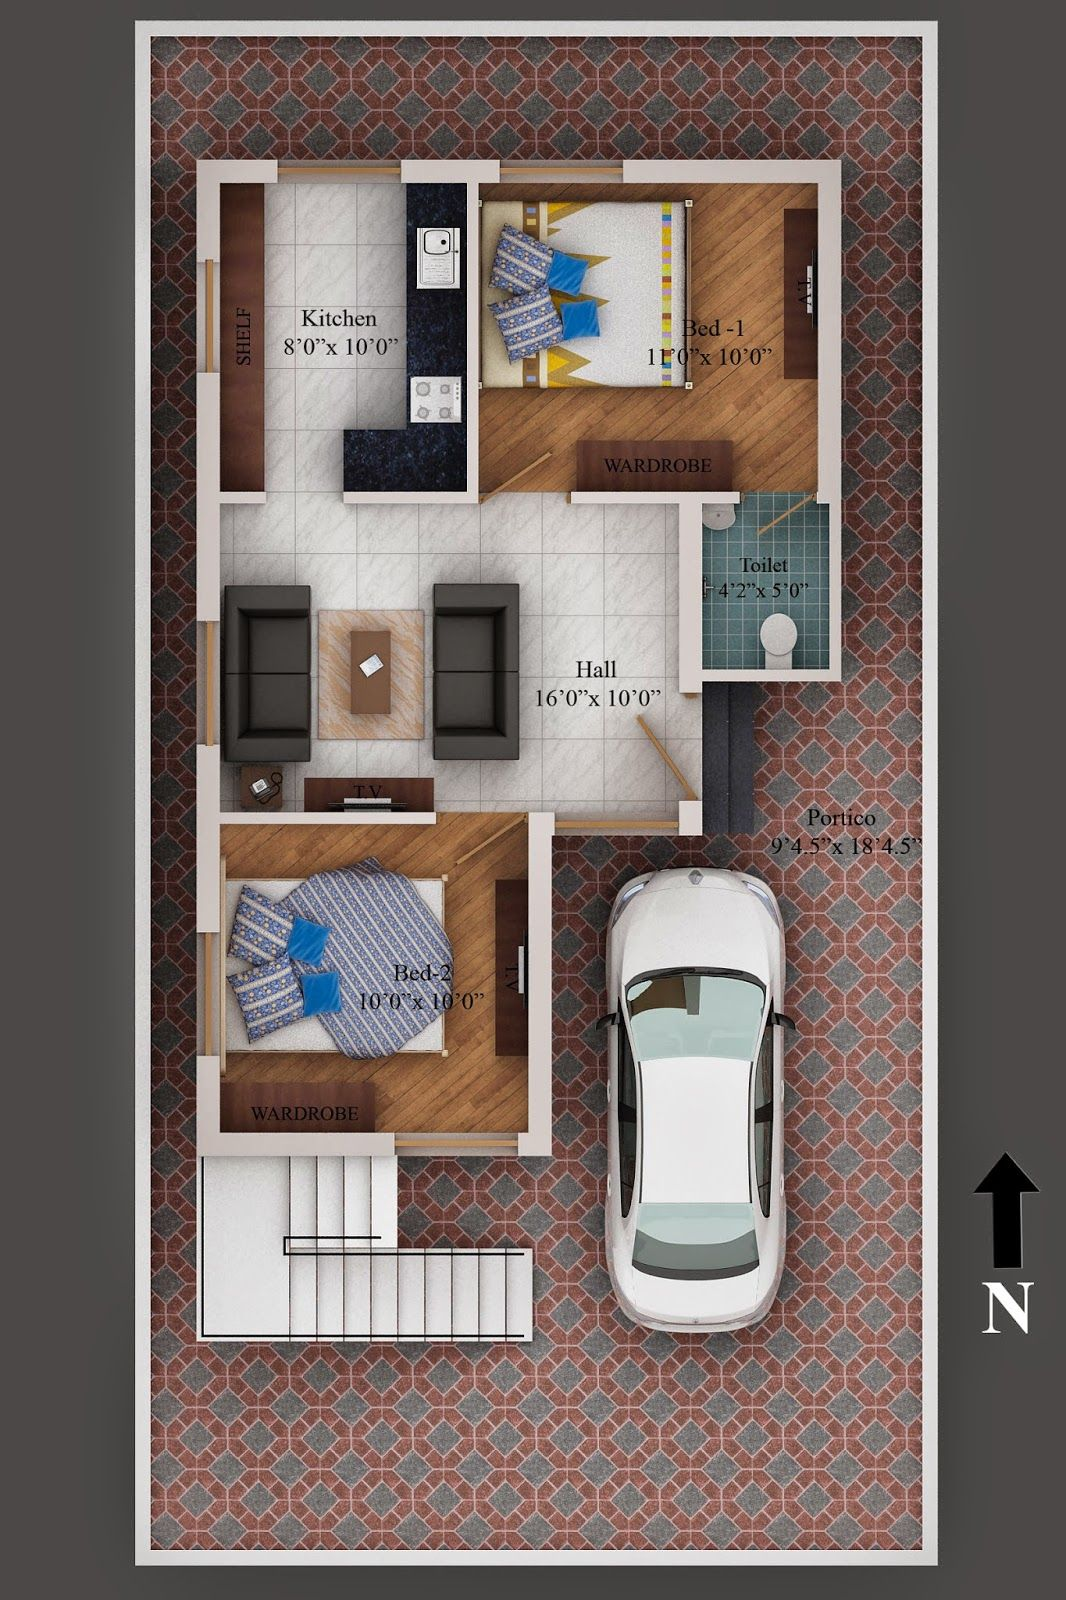 Real Value House Near Singanallur And Ondipudur Real Value Land Promoters And Builders In Coimbatore 20x30 House Plans 20x40 House Plans Indian House Plans